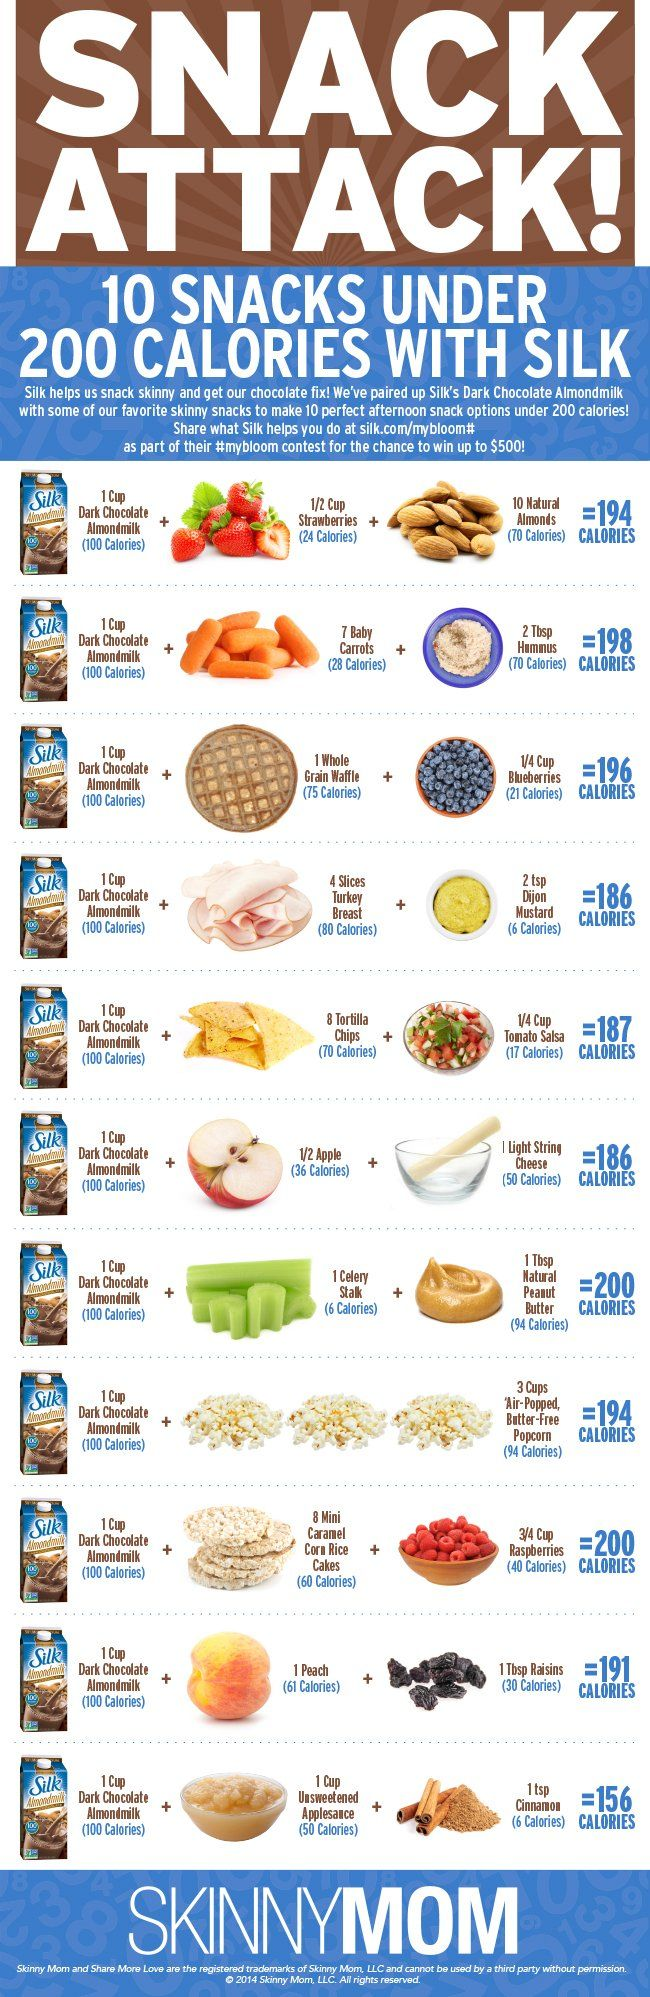 10 Snacks Under 200 Calories | Skinny Mom | Where Moms Get the Skinny on Healthy Living